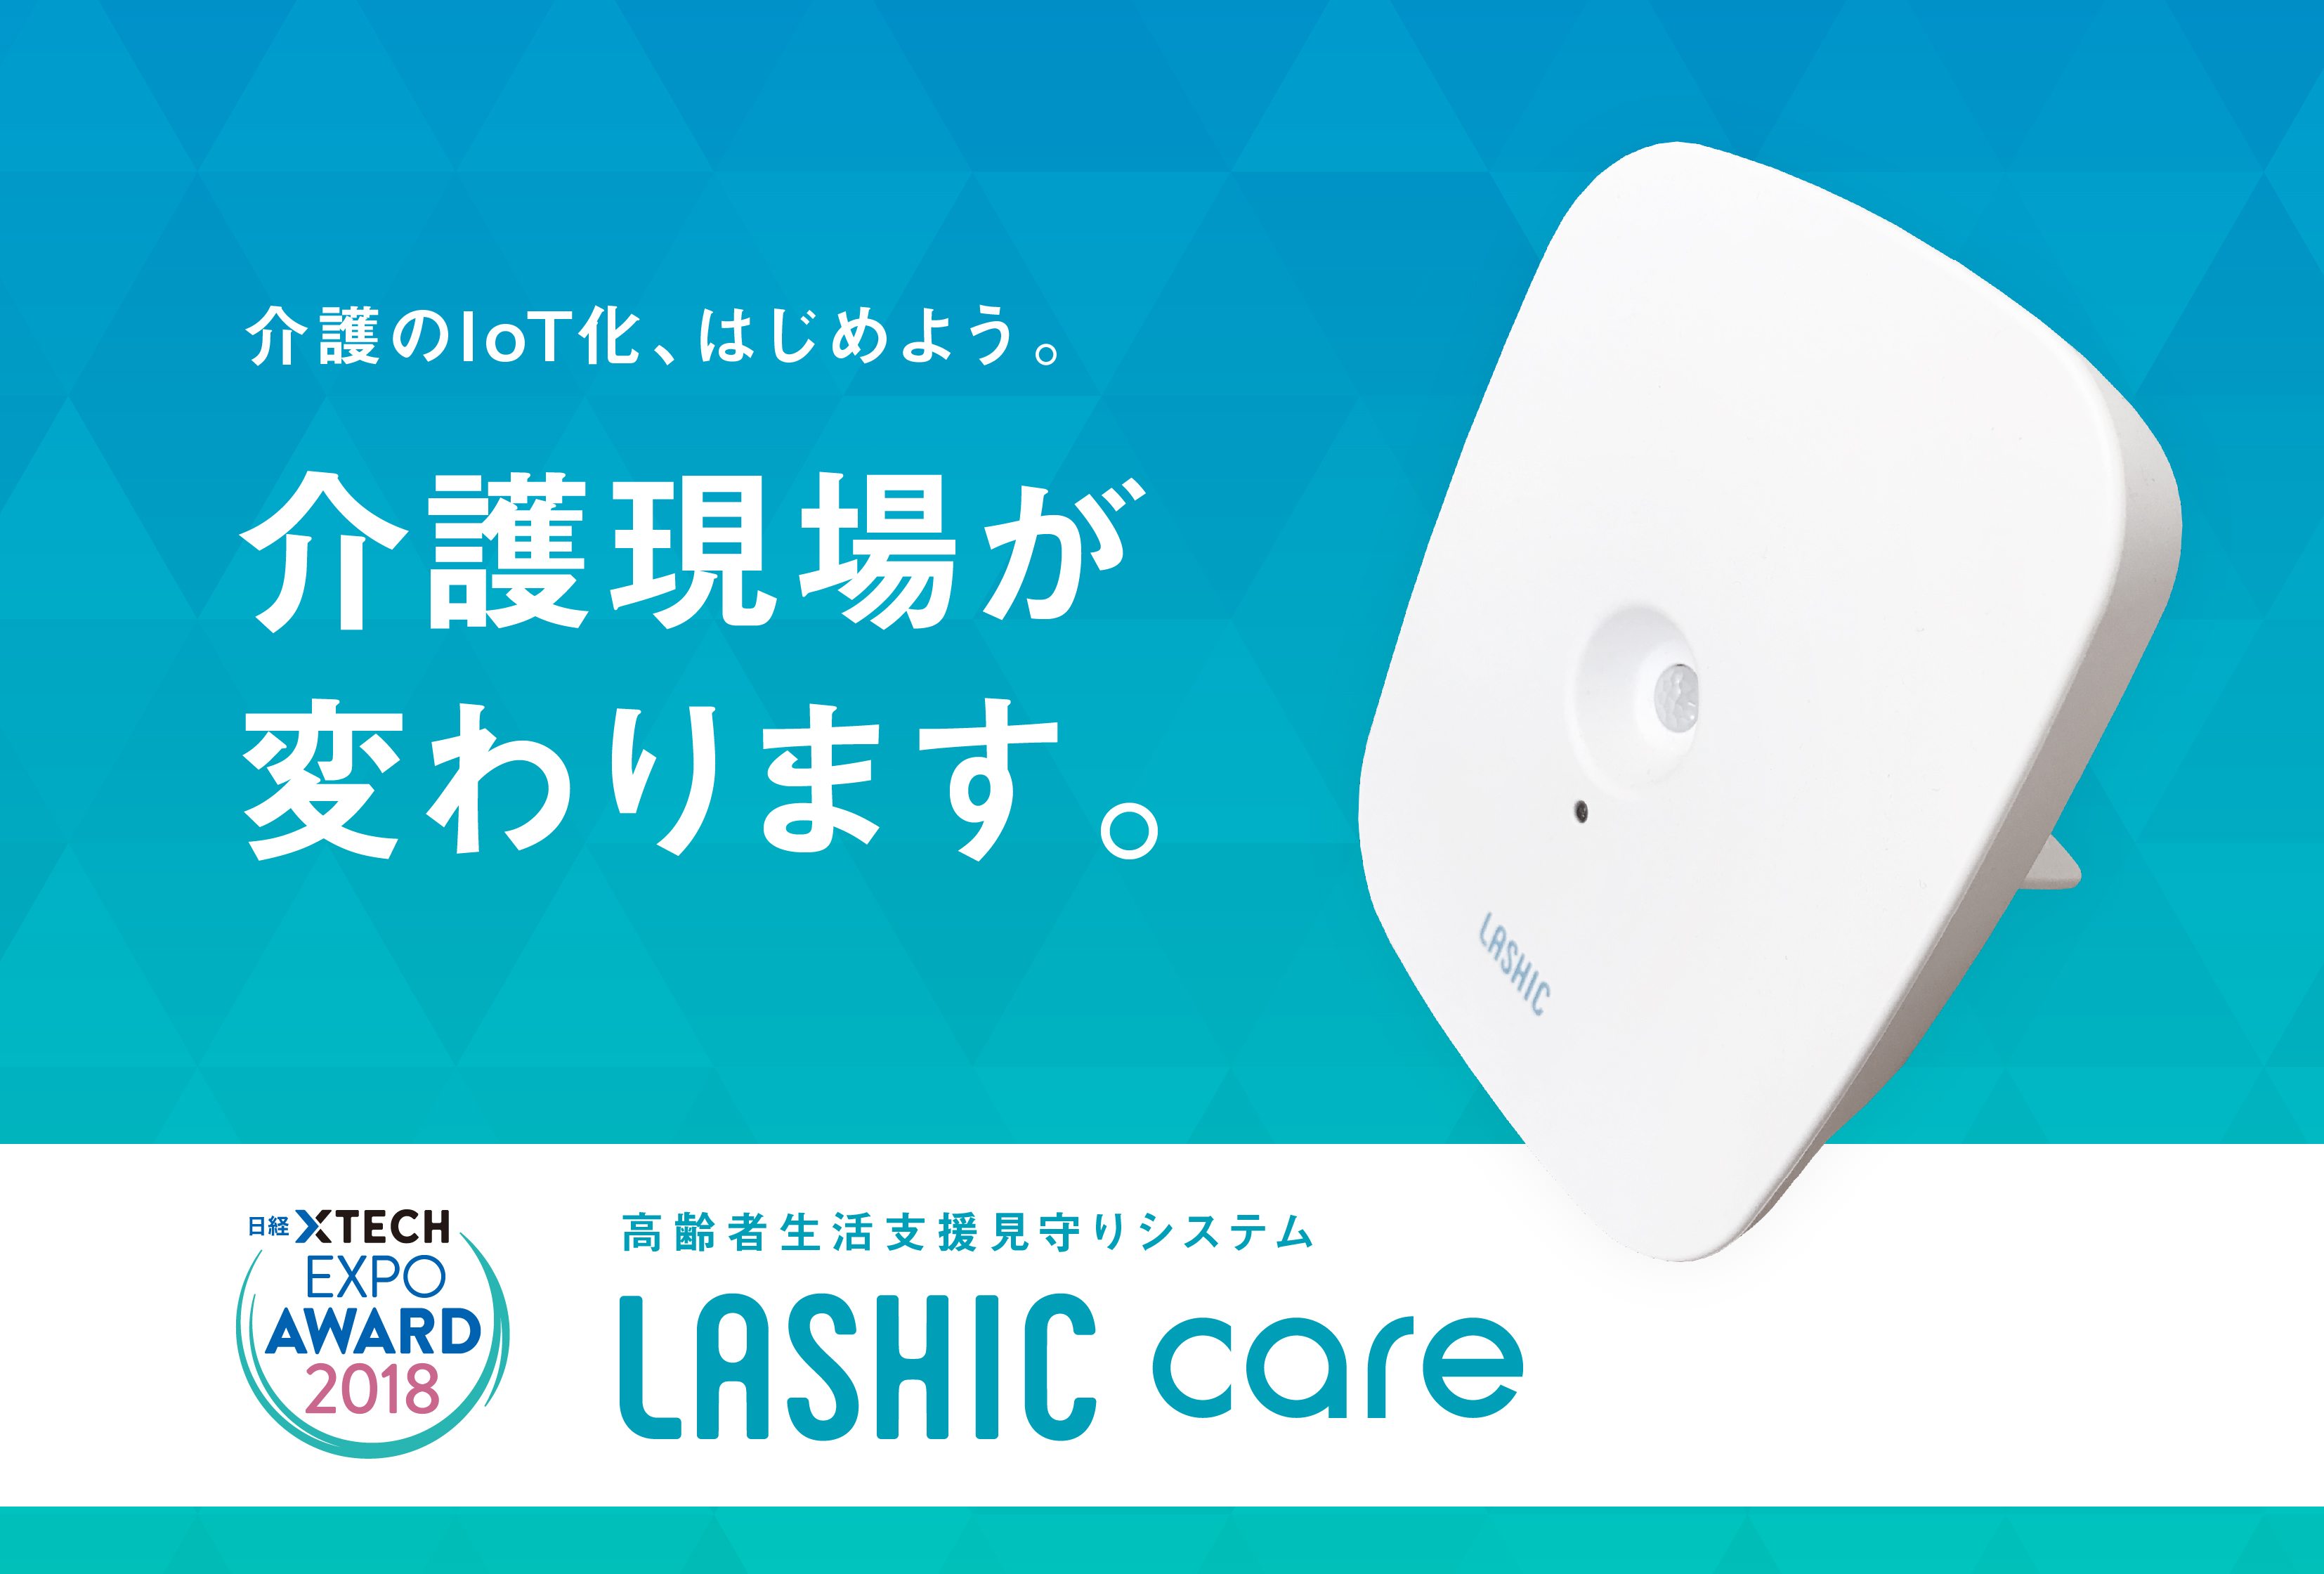 LASHIC care